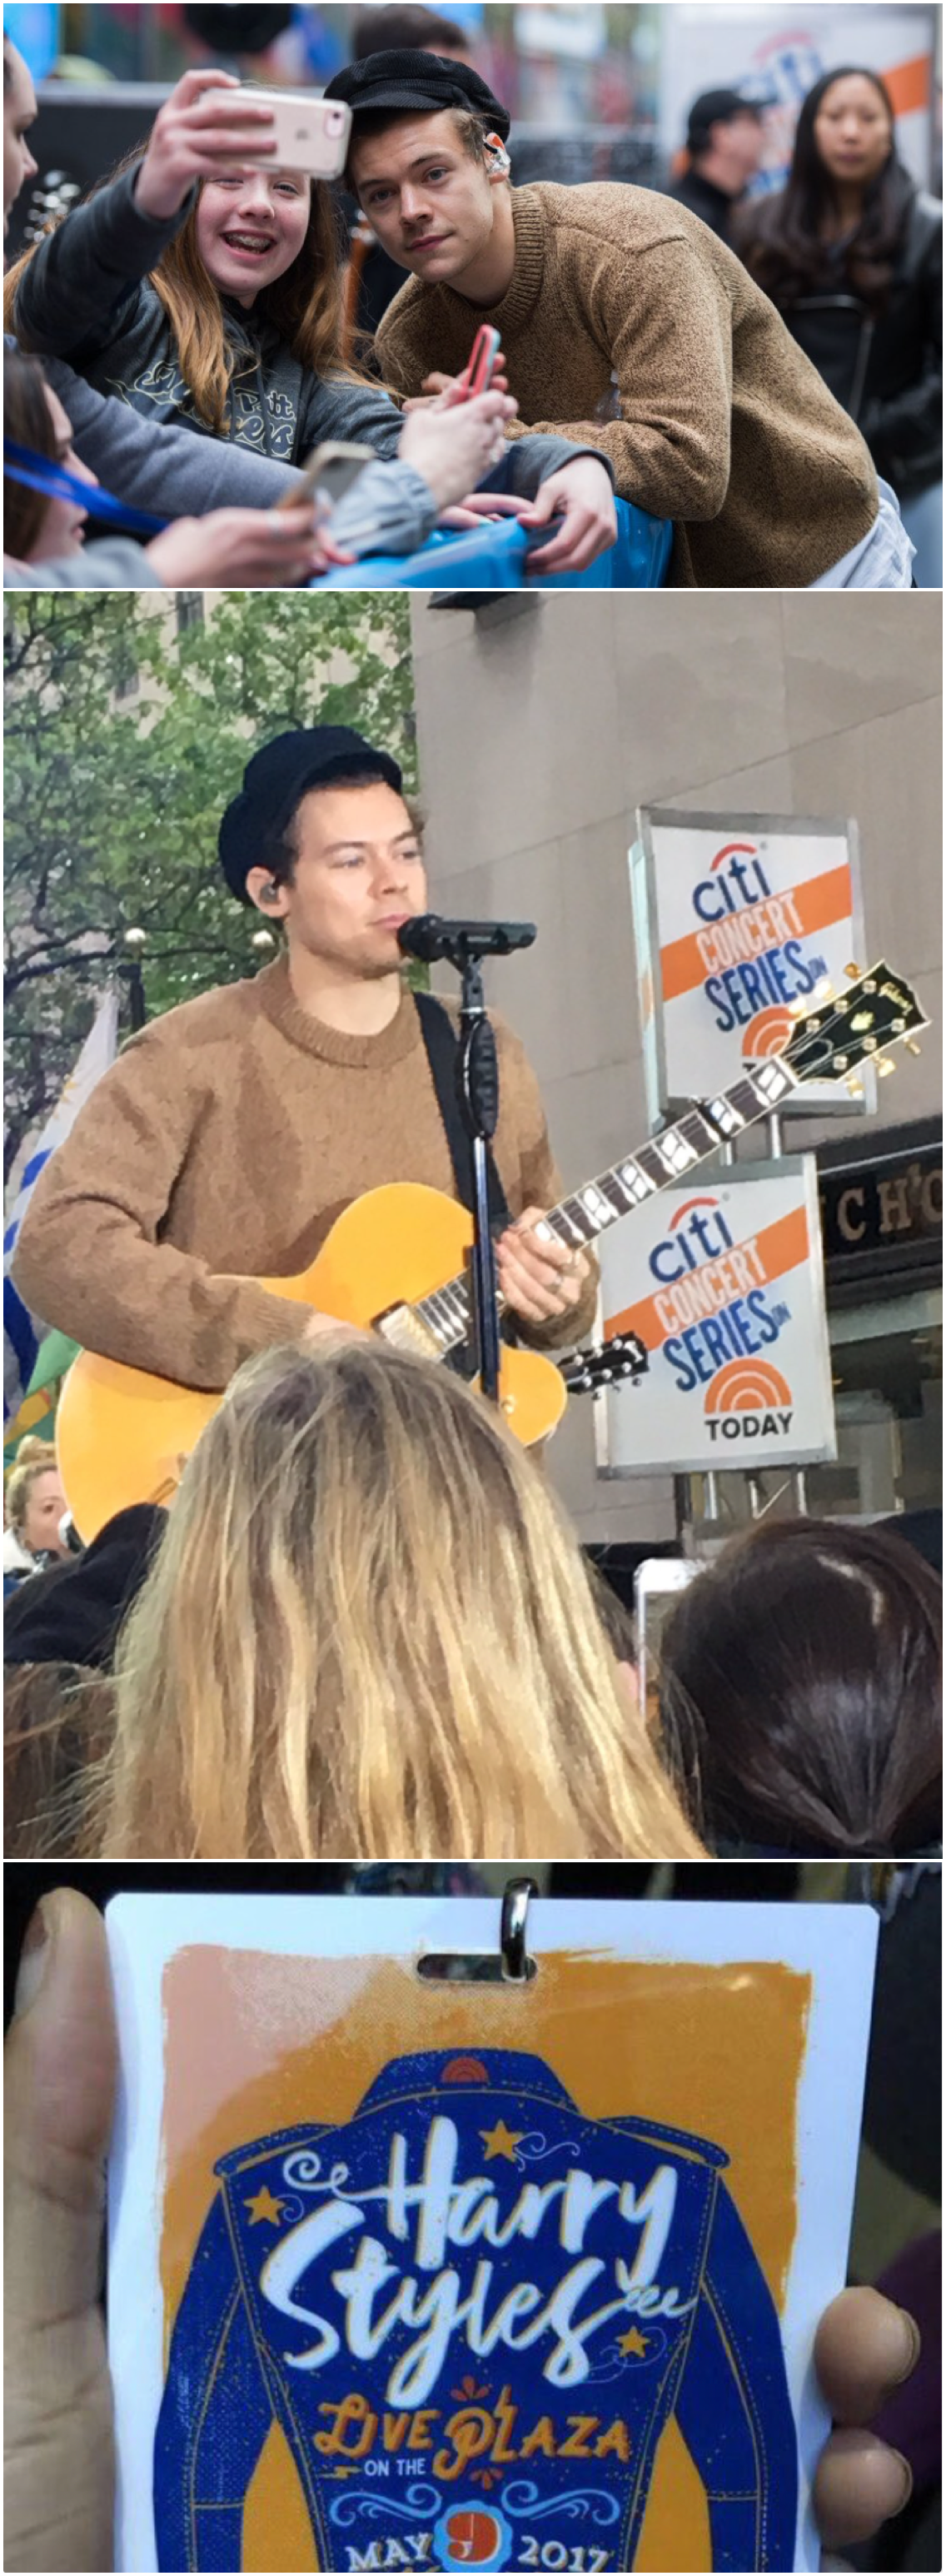 NEW   Harry at the Sound check for the Today Show Concert on May 9th. What a guy! He bought pizzas for fans who stayed overnight to watch the show. Follow rickysturn/harry-styles